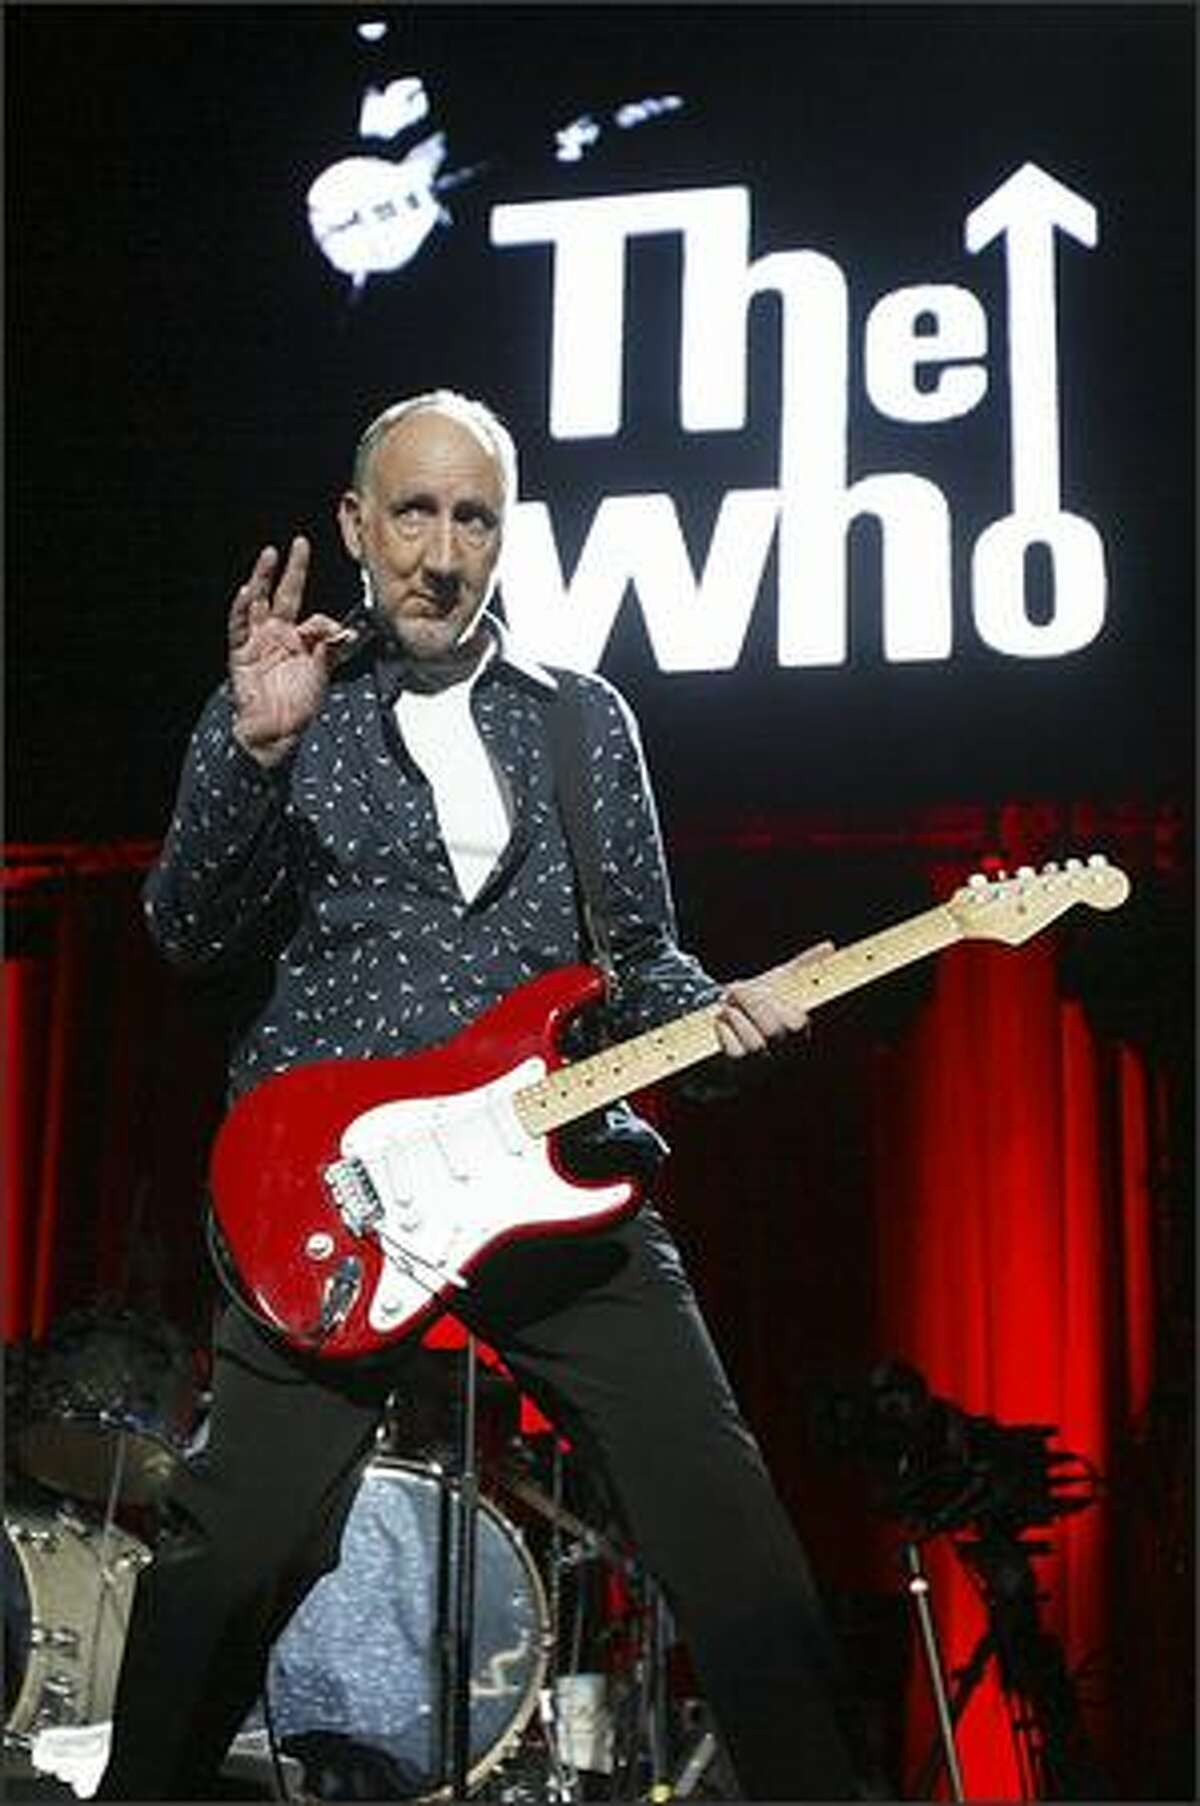 Pete Townsend performs the first song of the concert.